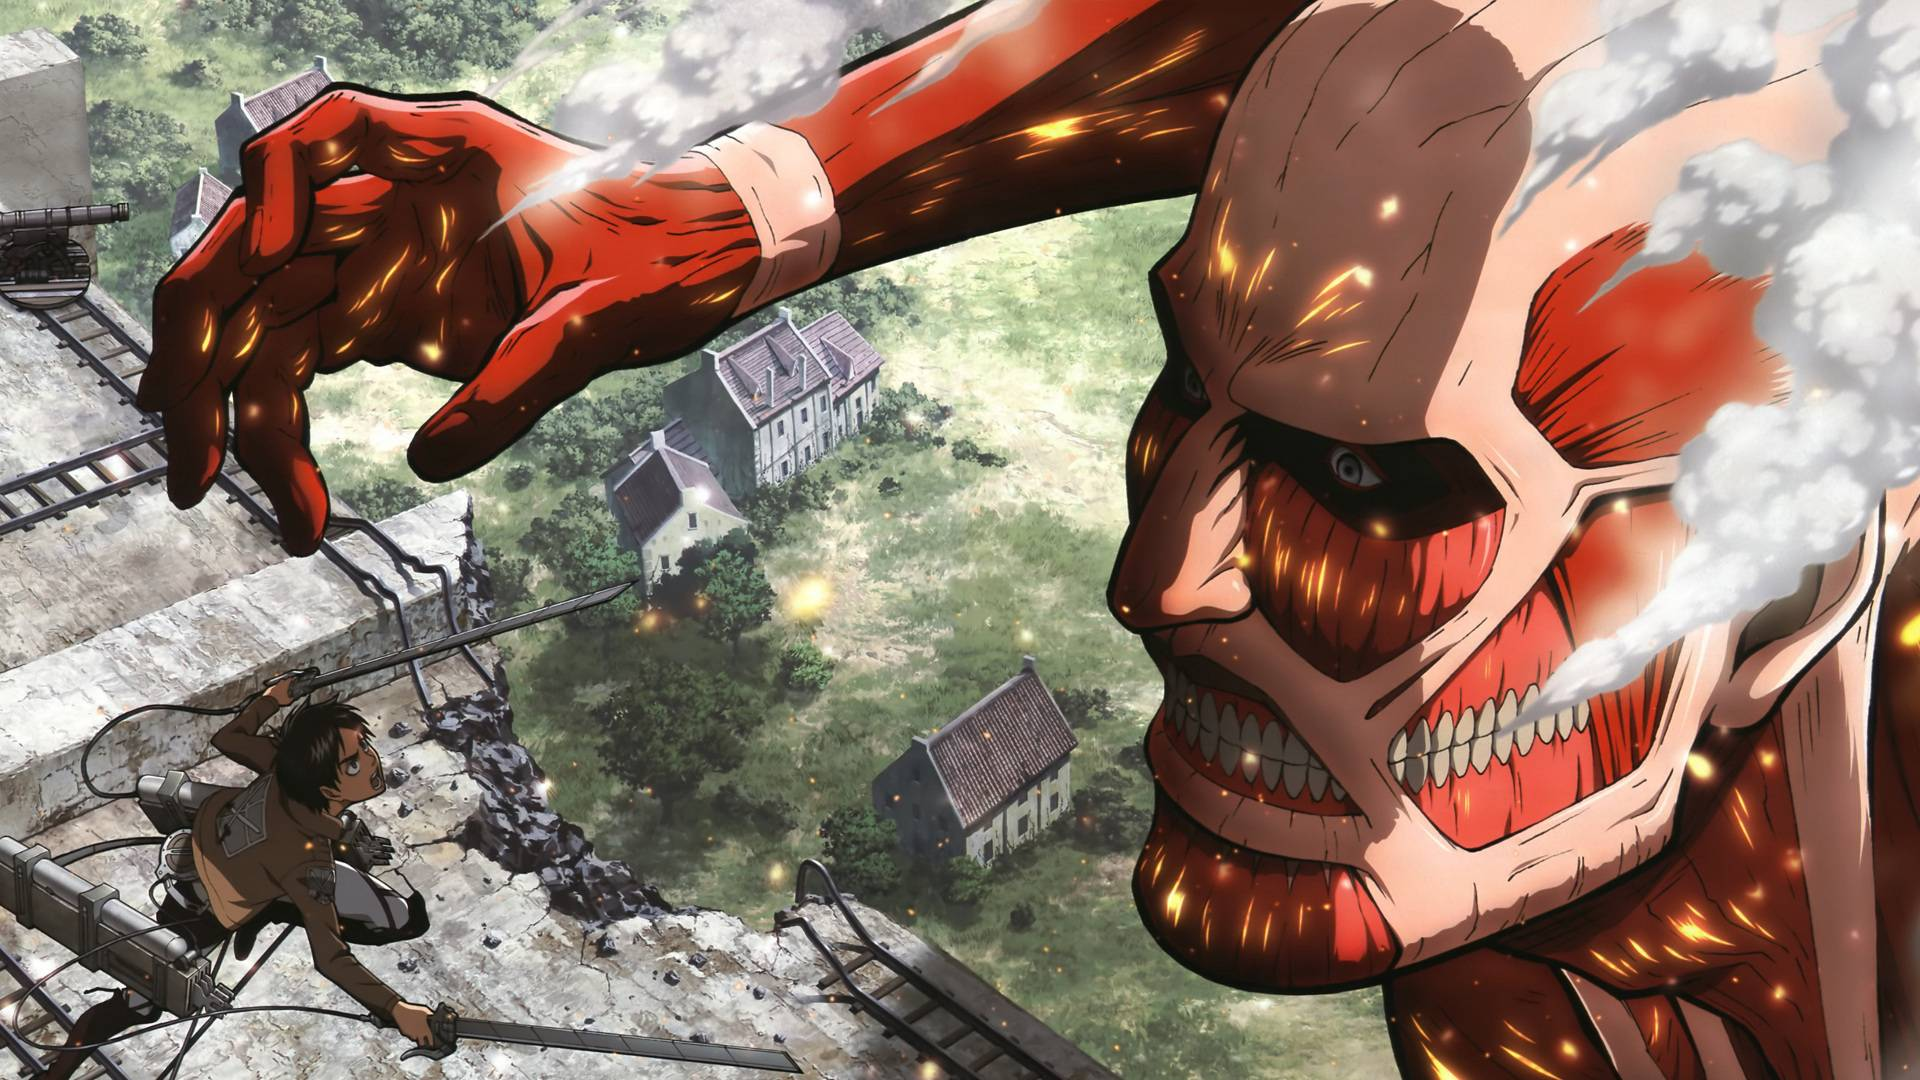 260556-attack-on-titan-attack-on-titan.jpg